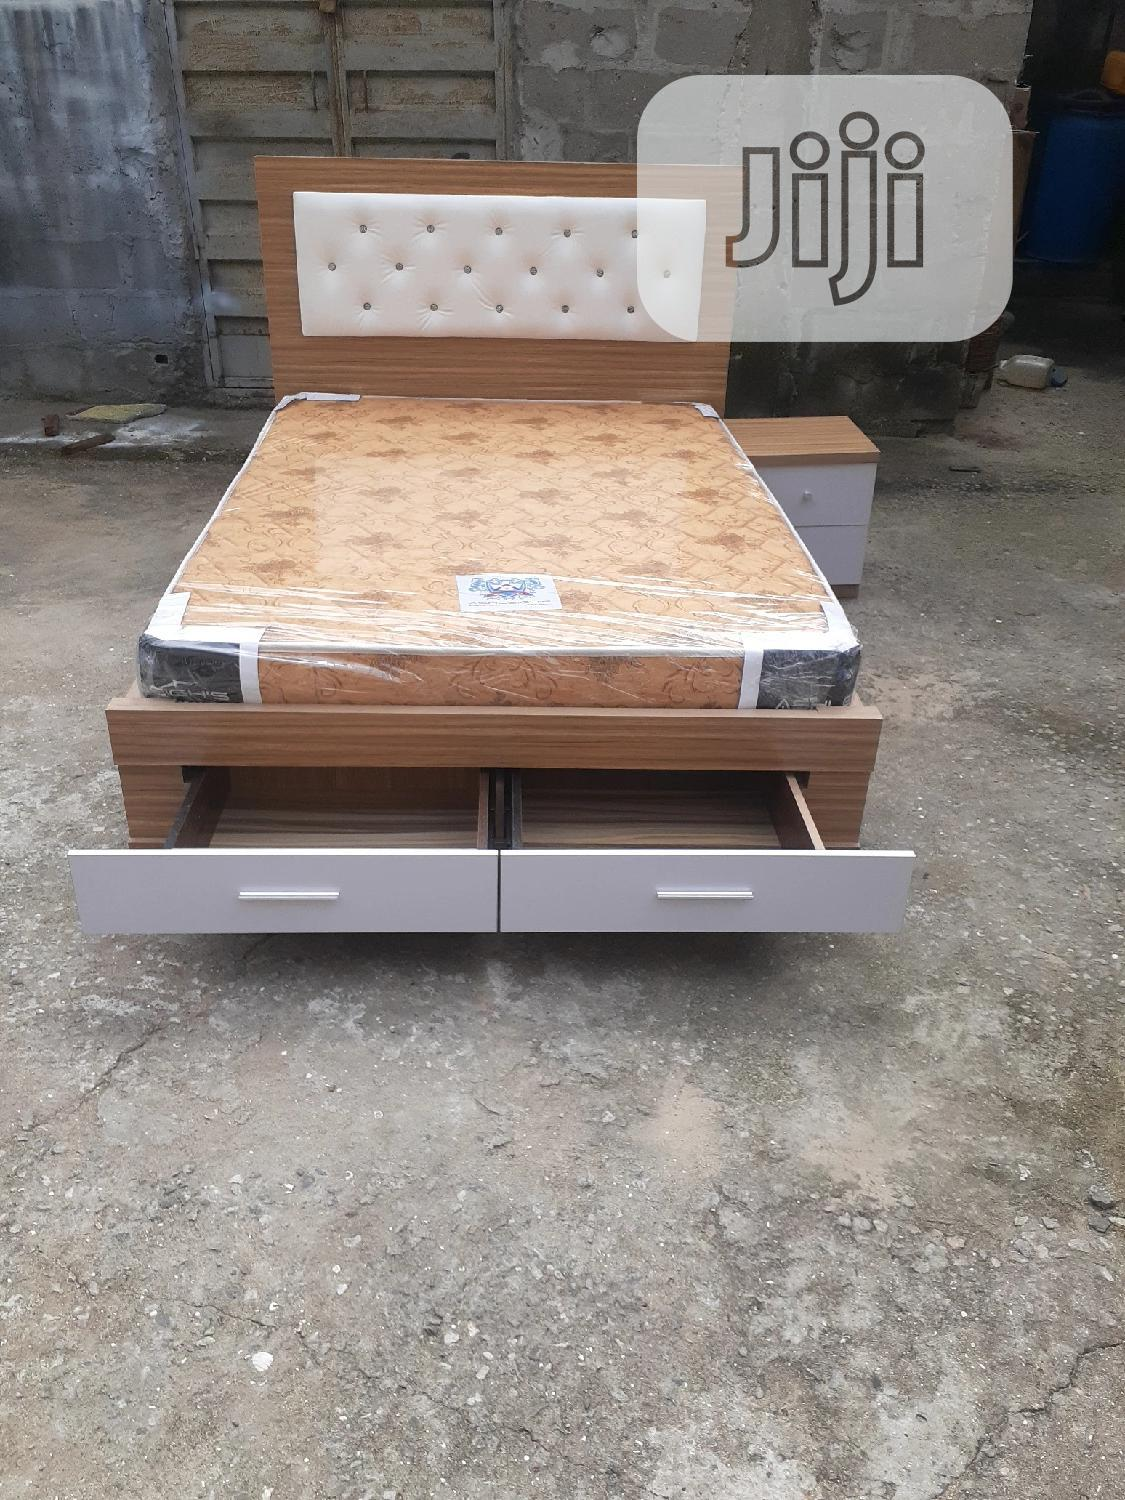 4 By 6 Bed Frame With Original Mattress | Furniture for sale in Ojo, Lagos State, Nigeria